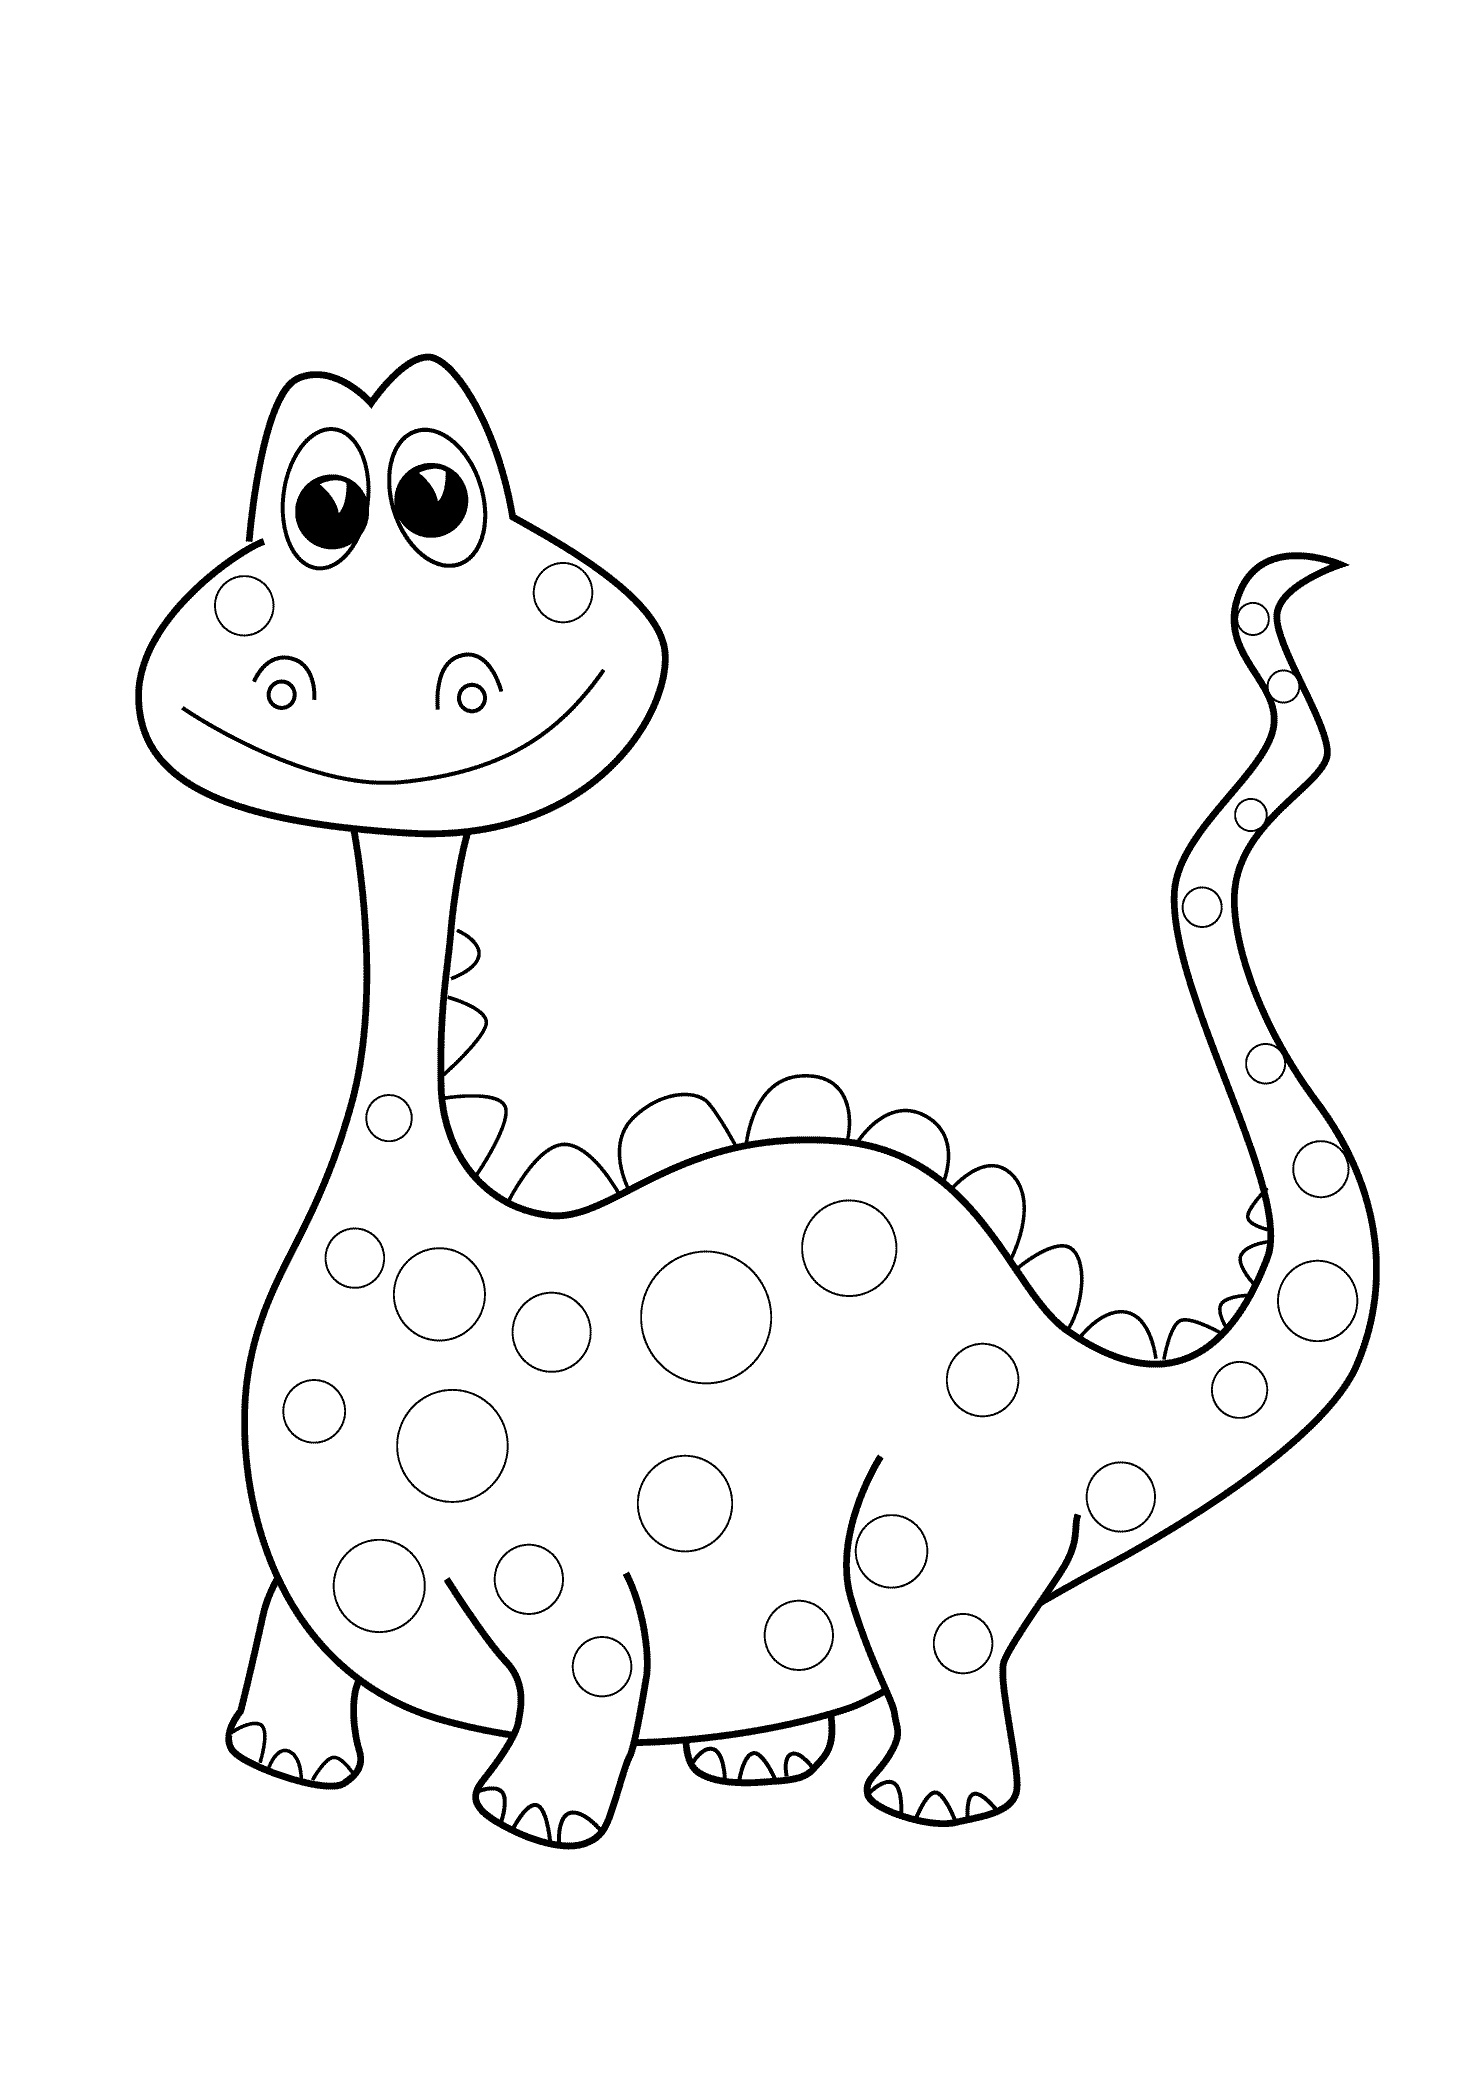 Preschool Dinosaur Coloring Page Easy to Color for Kids